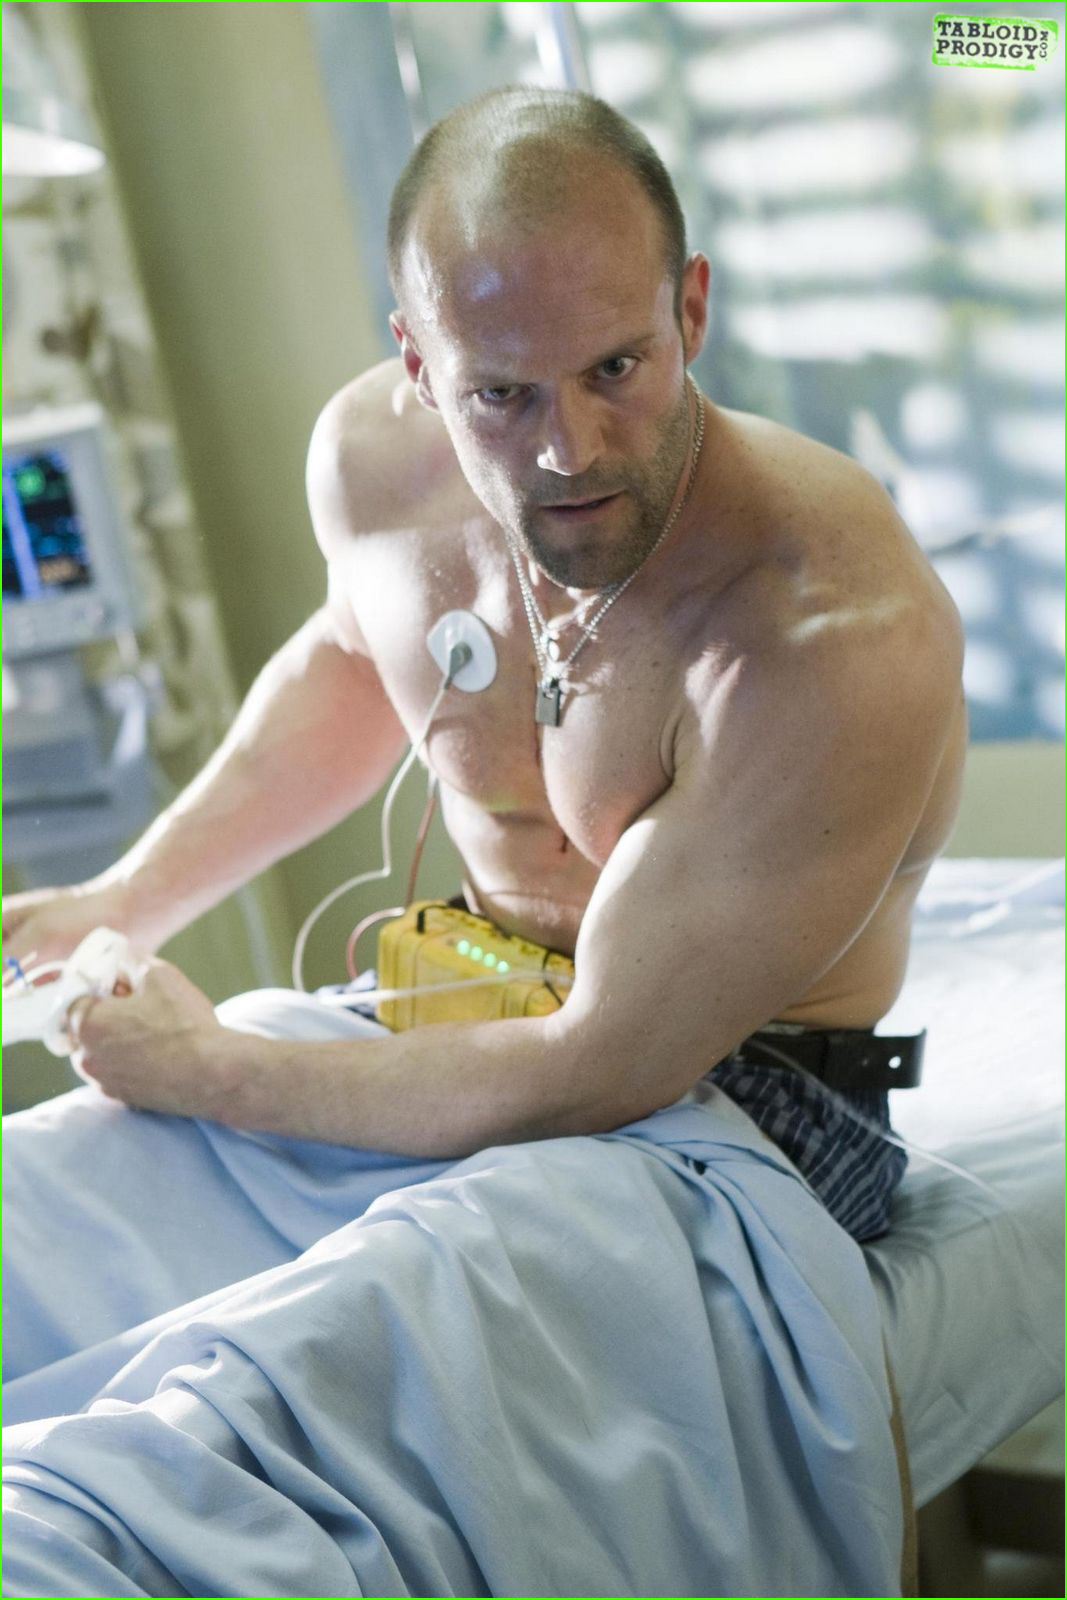 jason statham the male celebrity jason statham